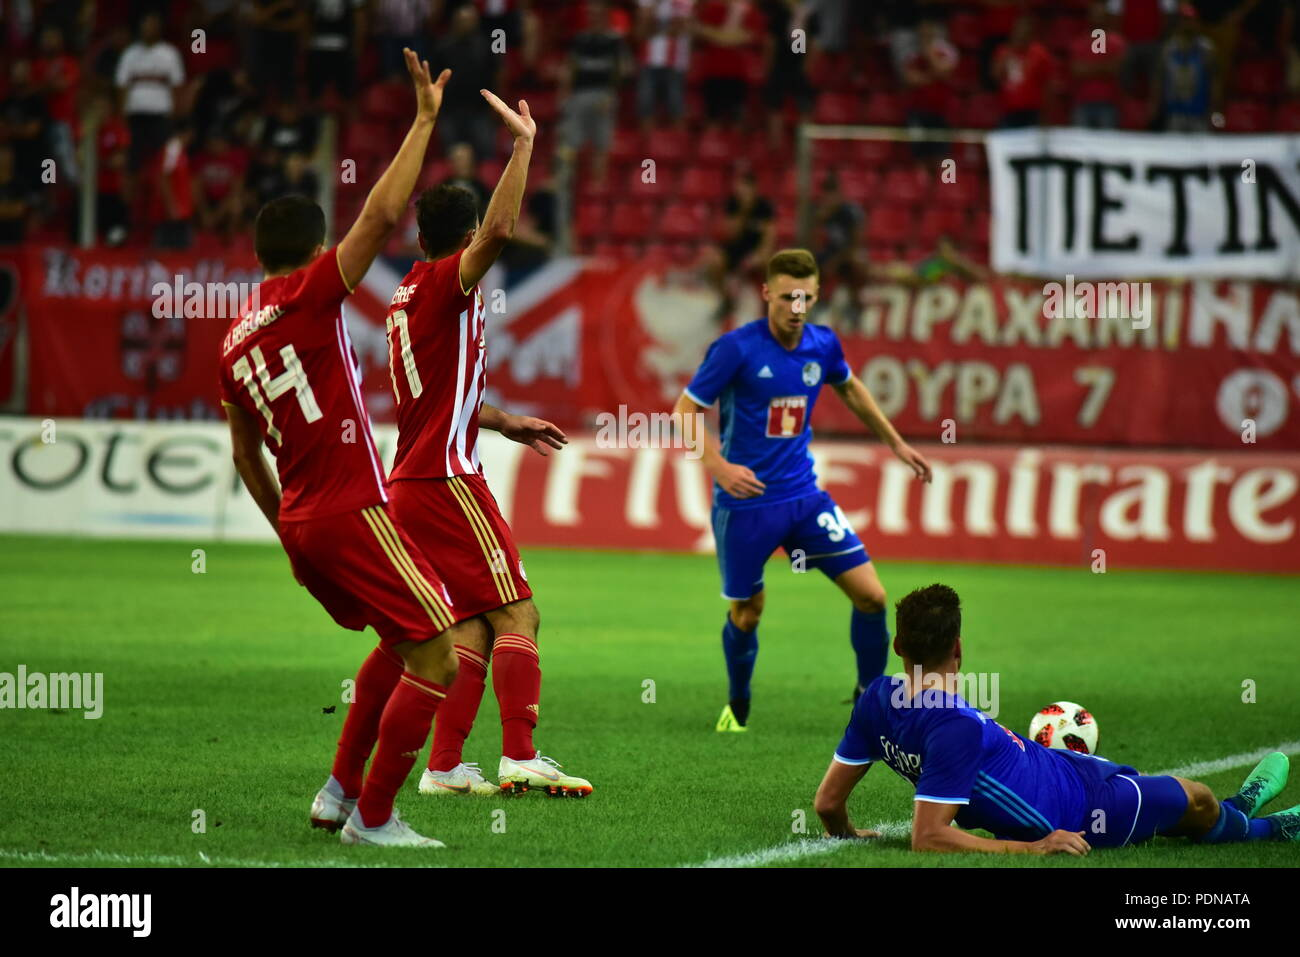 Piraeus, Greece. 09th Aug, 2018. Lazaros Christodoulopoulos (no 11) and Omar Elabdellaoui (no 14) of Olympiacos, point out that the ball possession is for Olympiacos. Credit: Dimitrios Karvountzis/Pacific Press/Alamy Live News - Stock Image